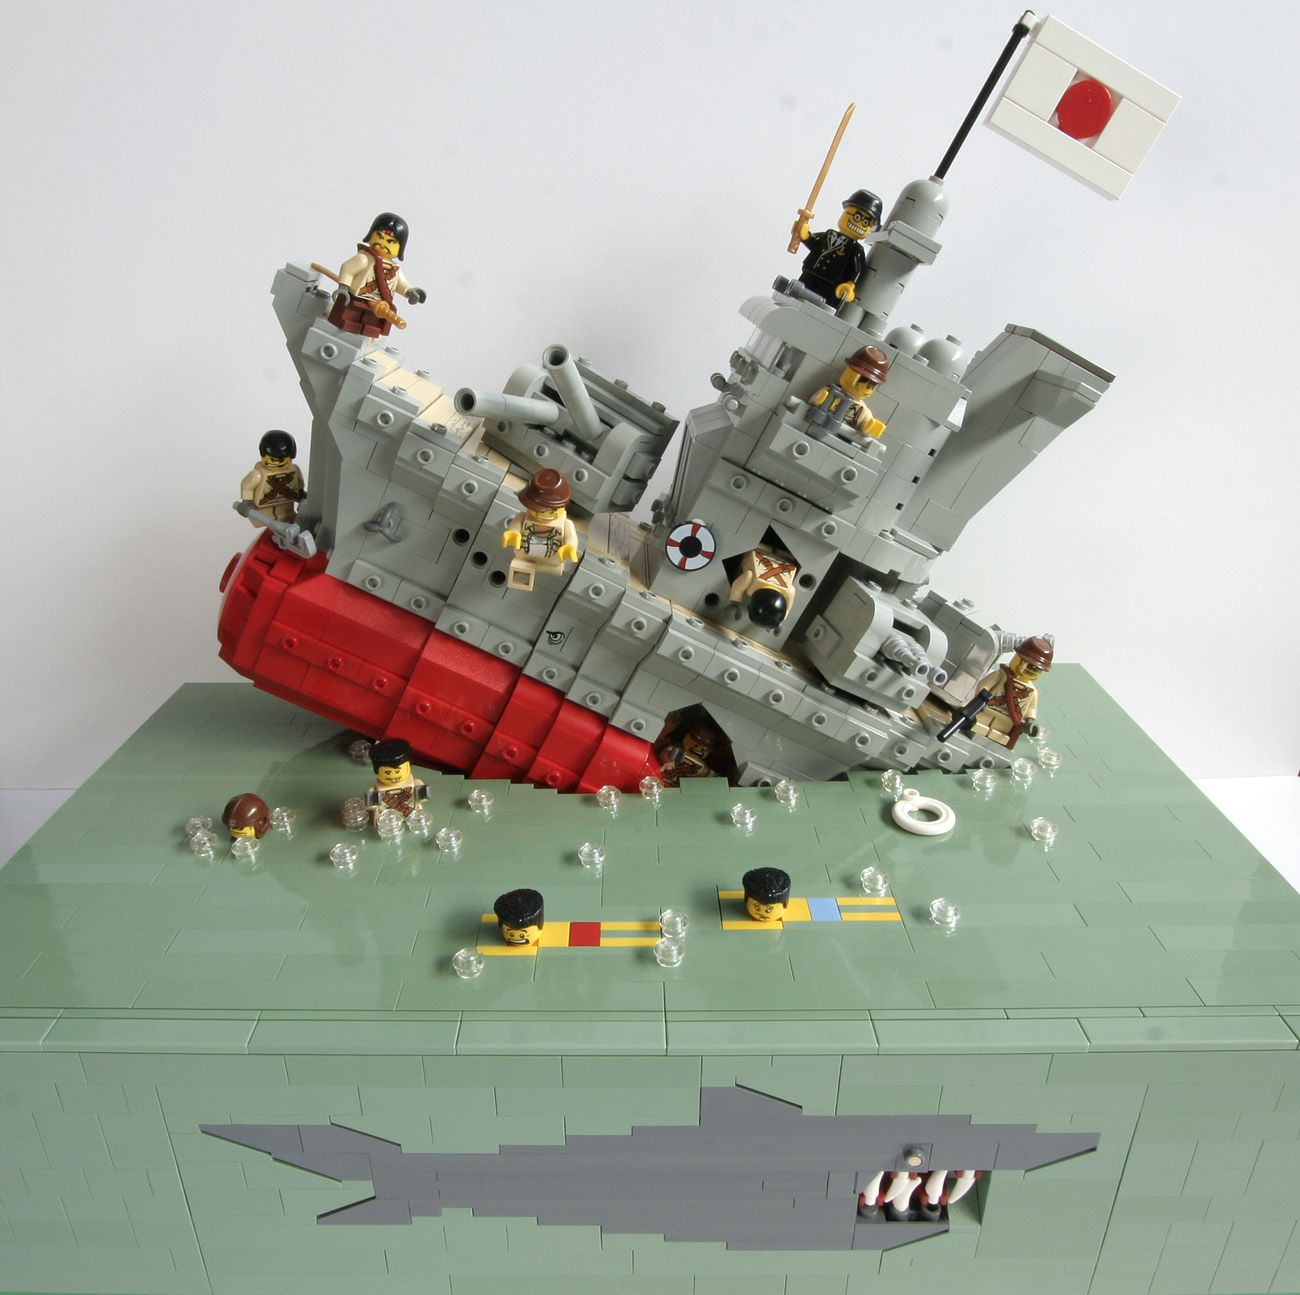 Don T Go In The Water Lego Pinterest Lego Lego